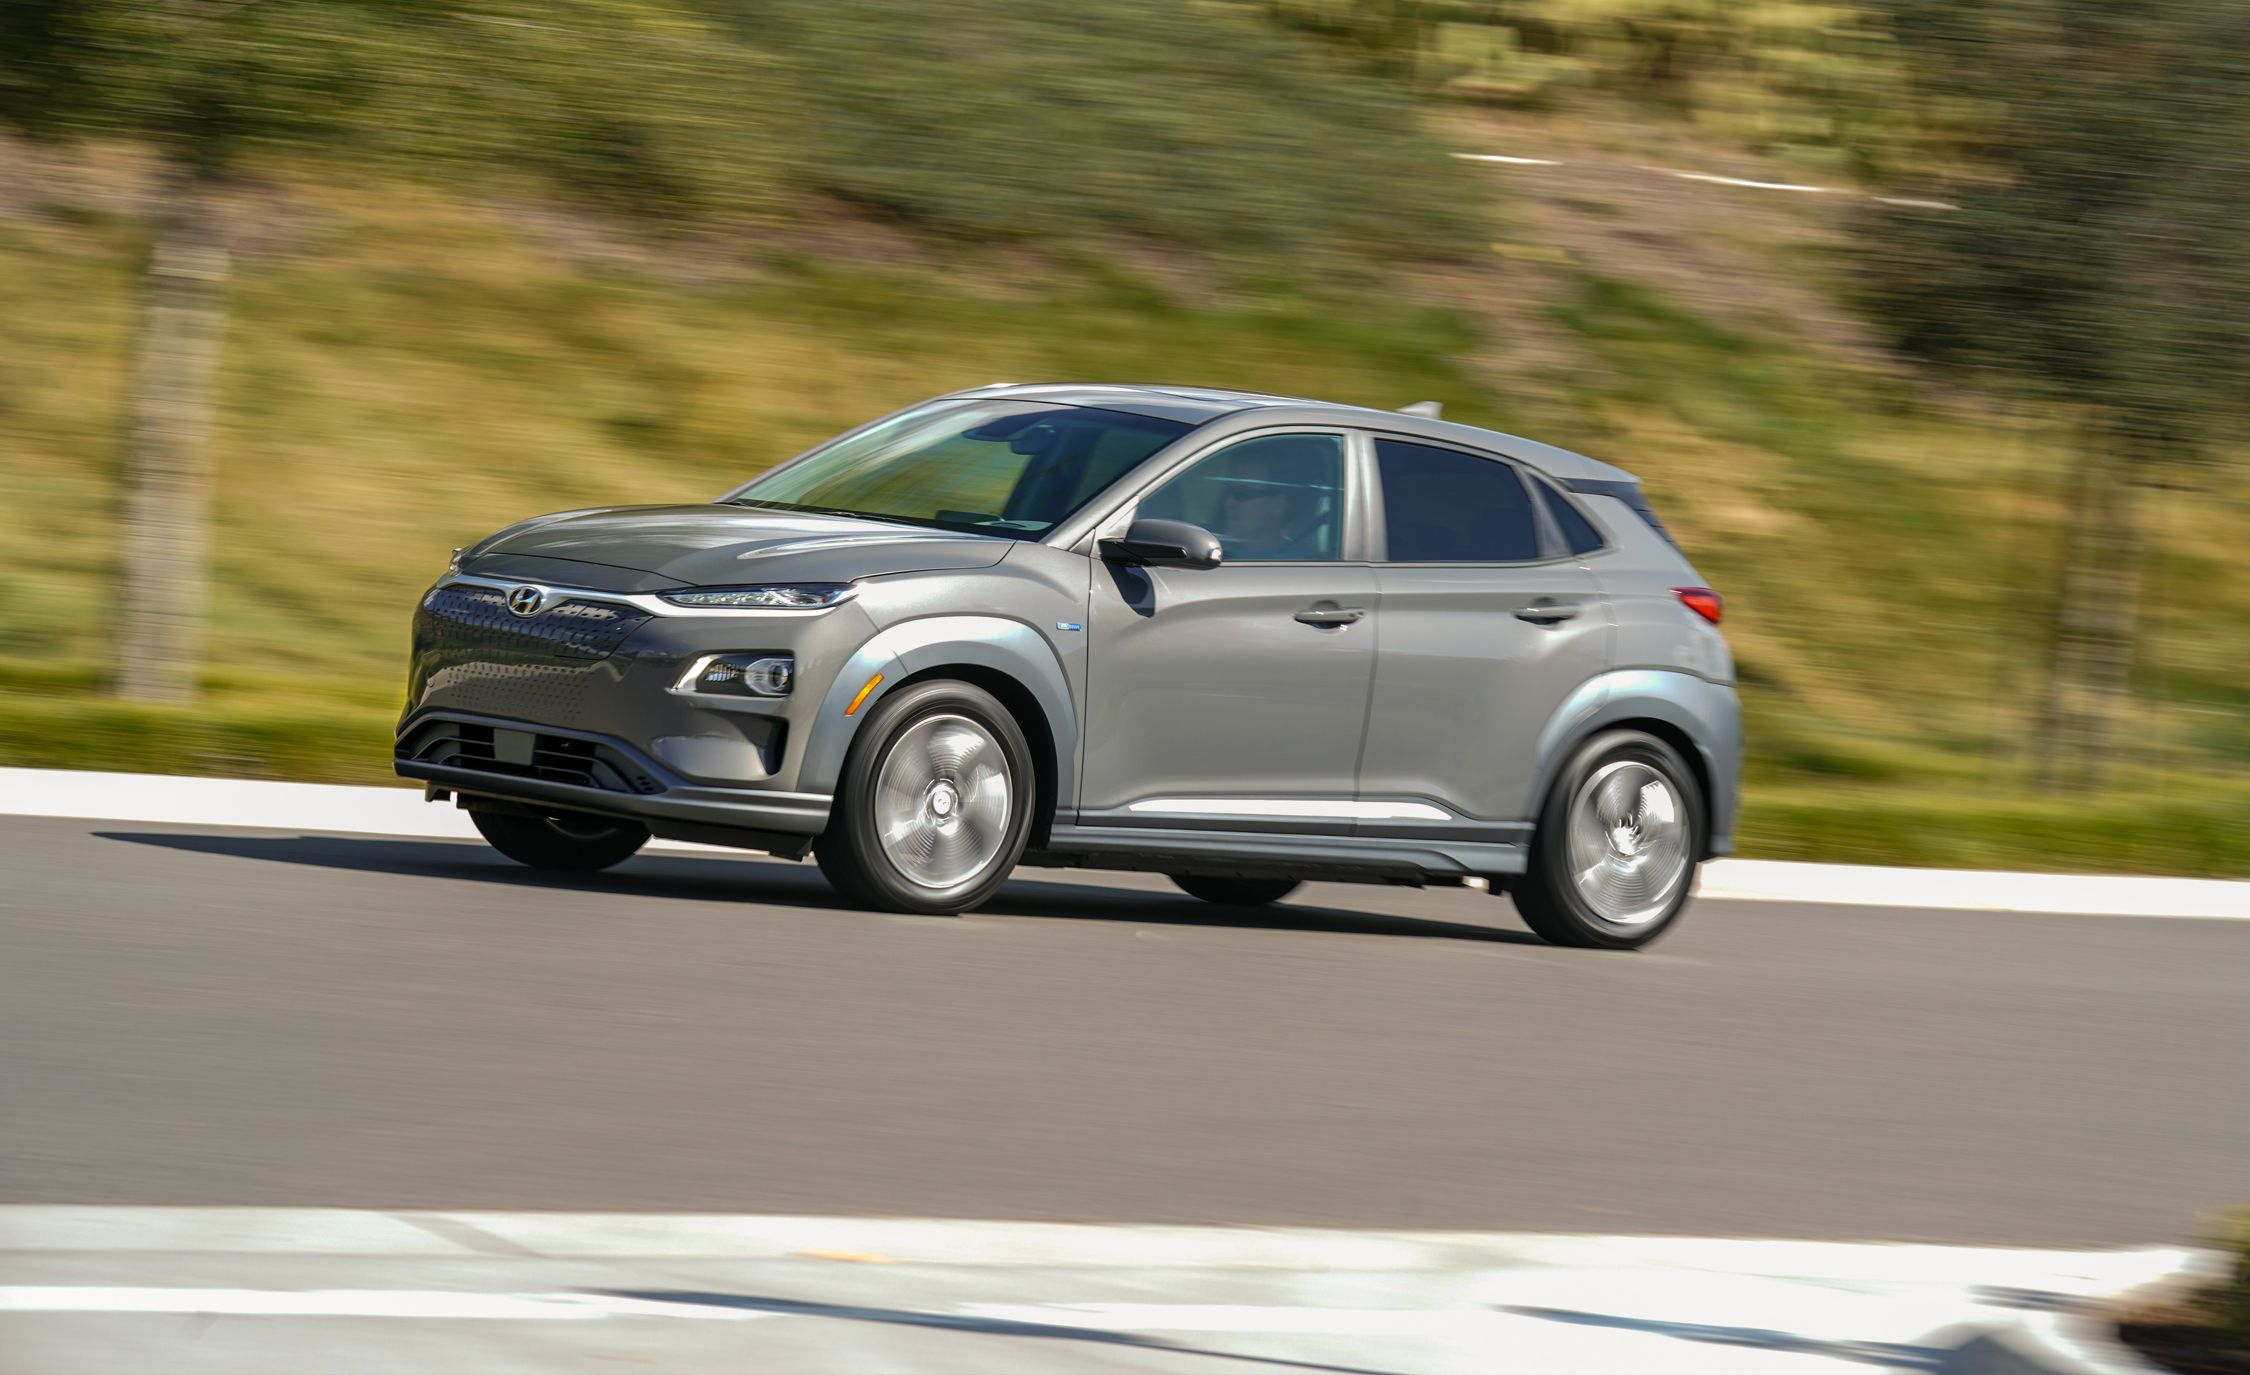 Jeep Build And Price >> 2019 Hyundai Kona Electric Debuts, Packs a Big Battery | News | Car and Driver